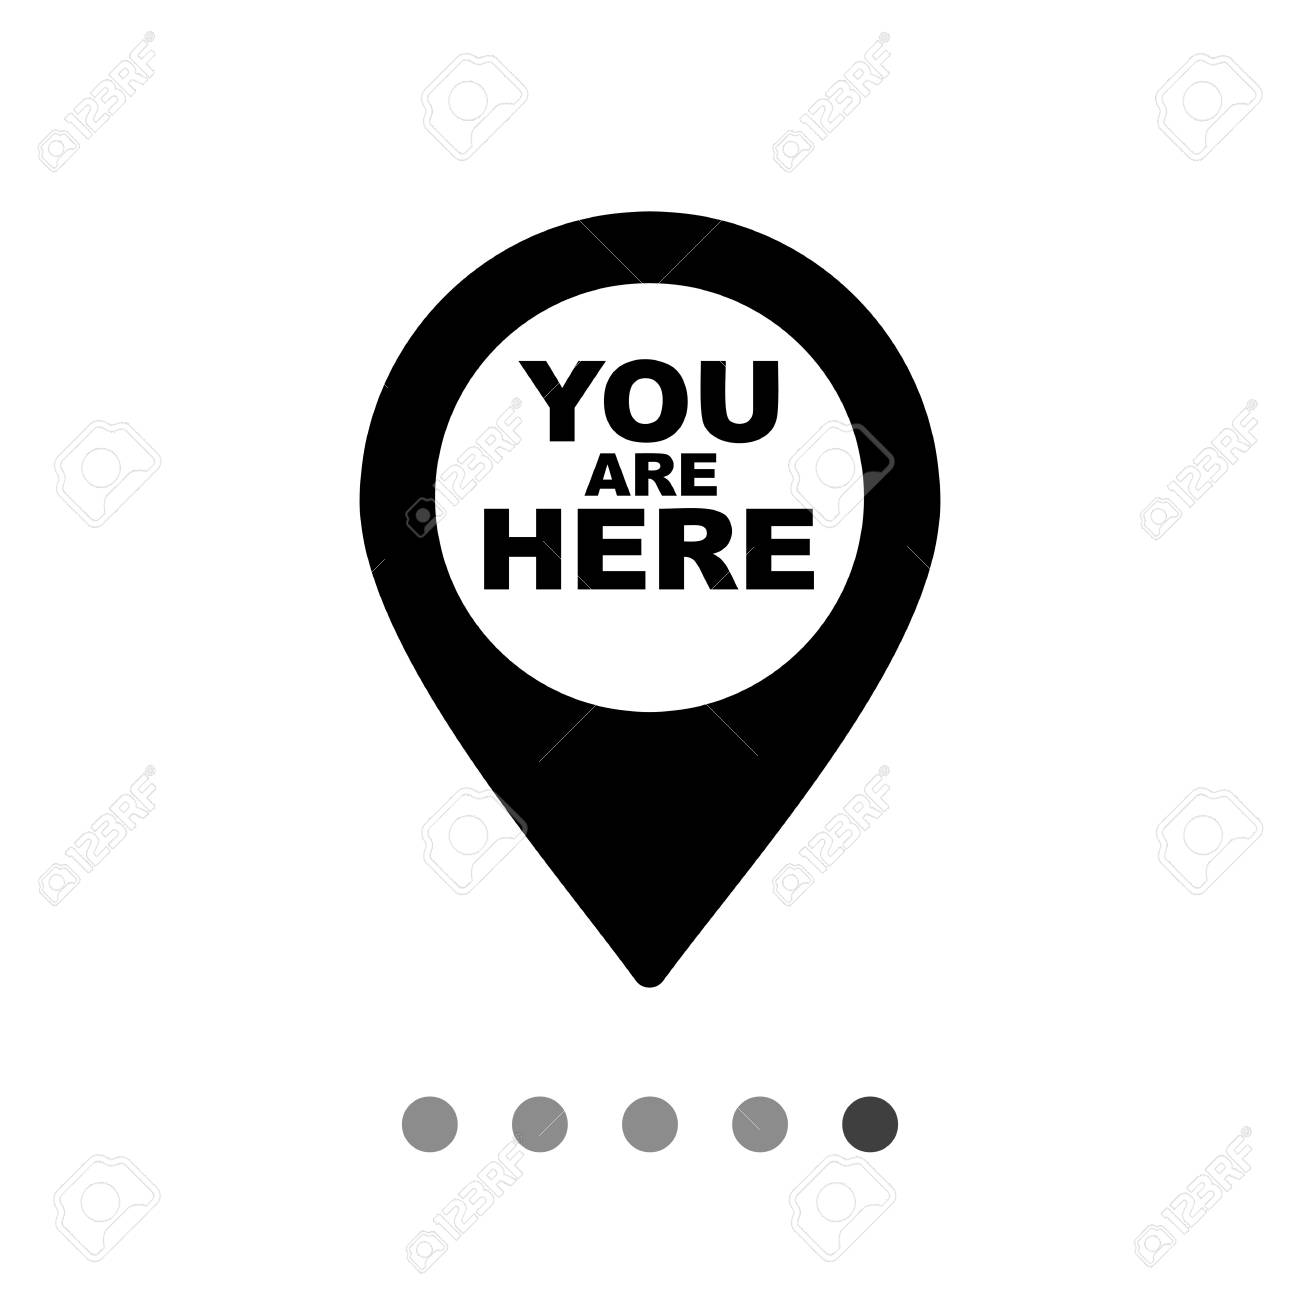 Monochrome vector icon of you are here map pointer.